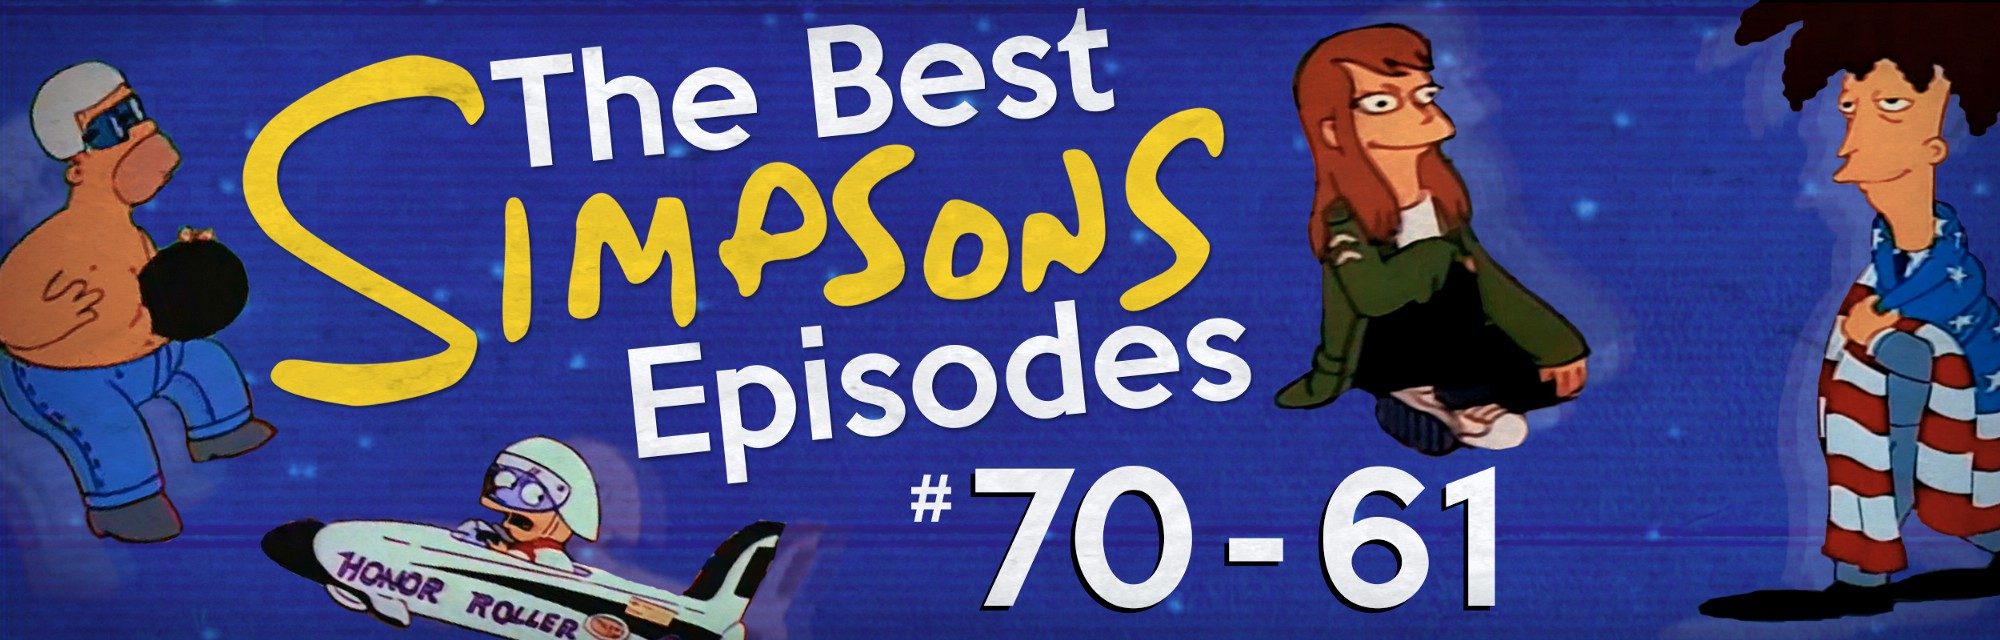 the insider s guide to the 100 best simpsons episodes ever 70 61